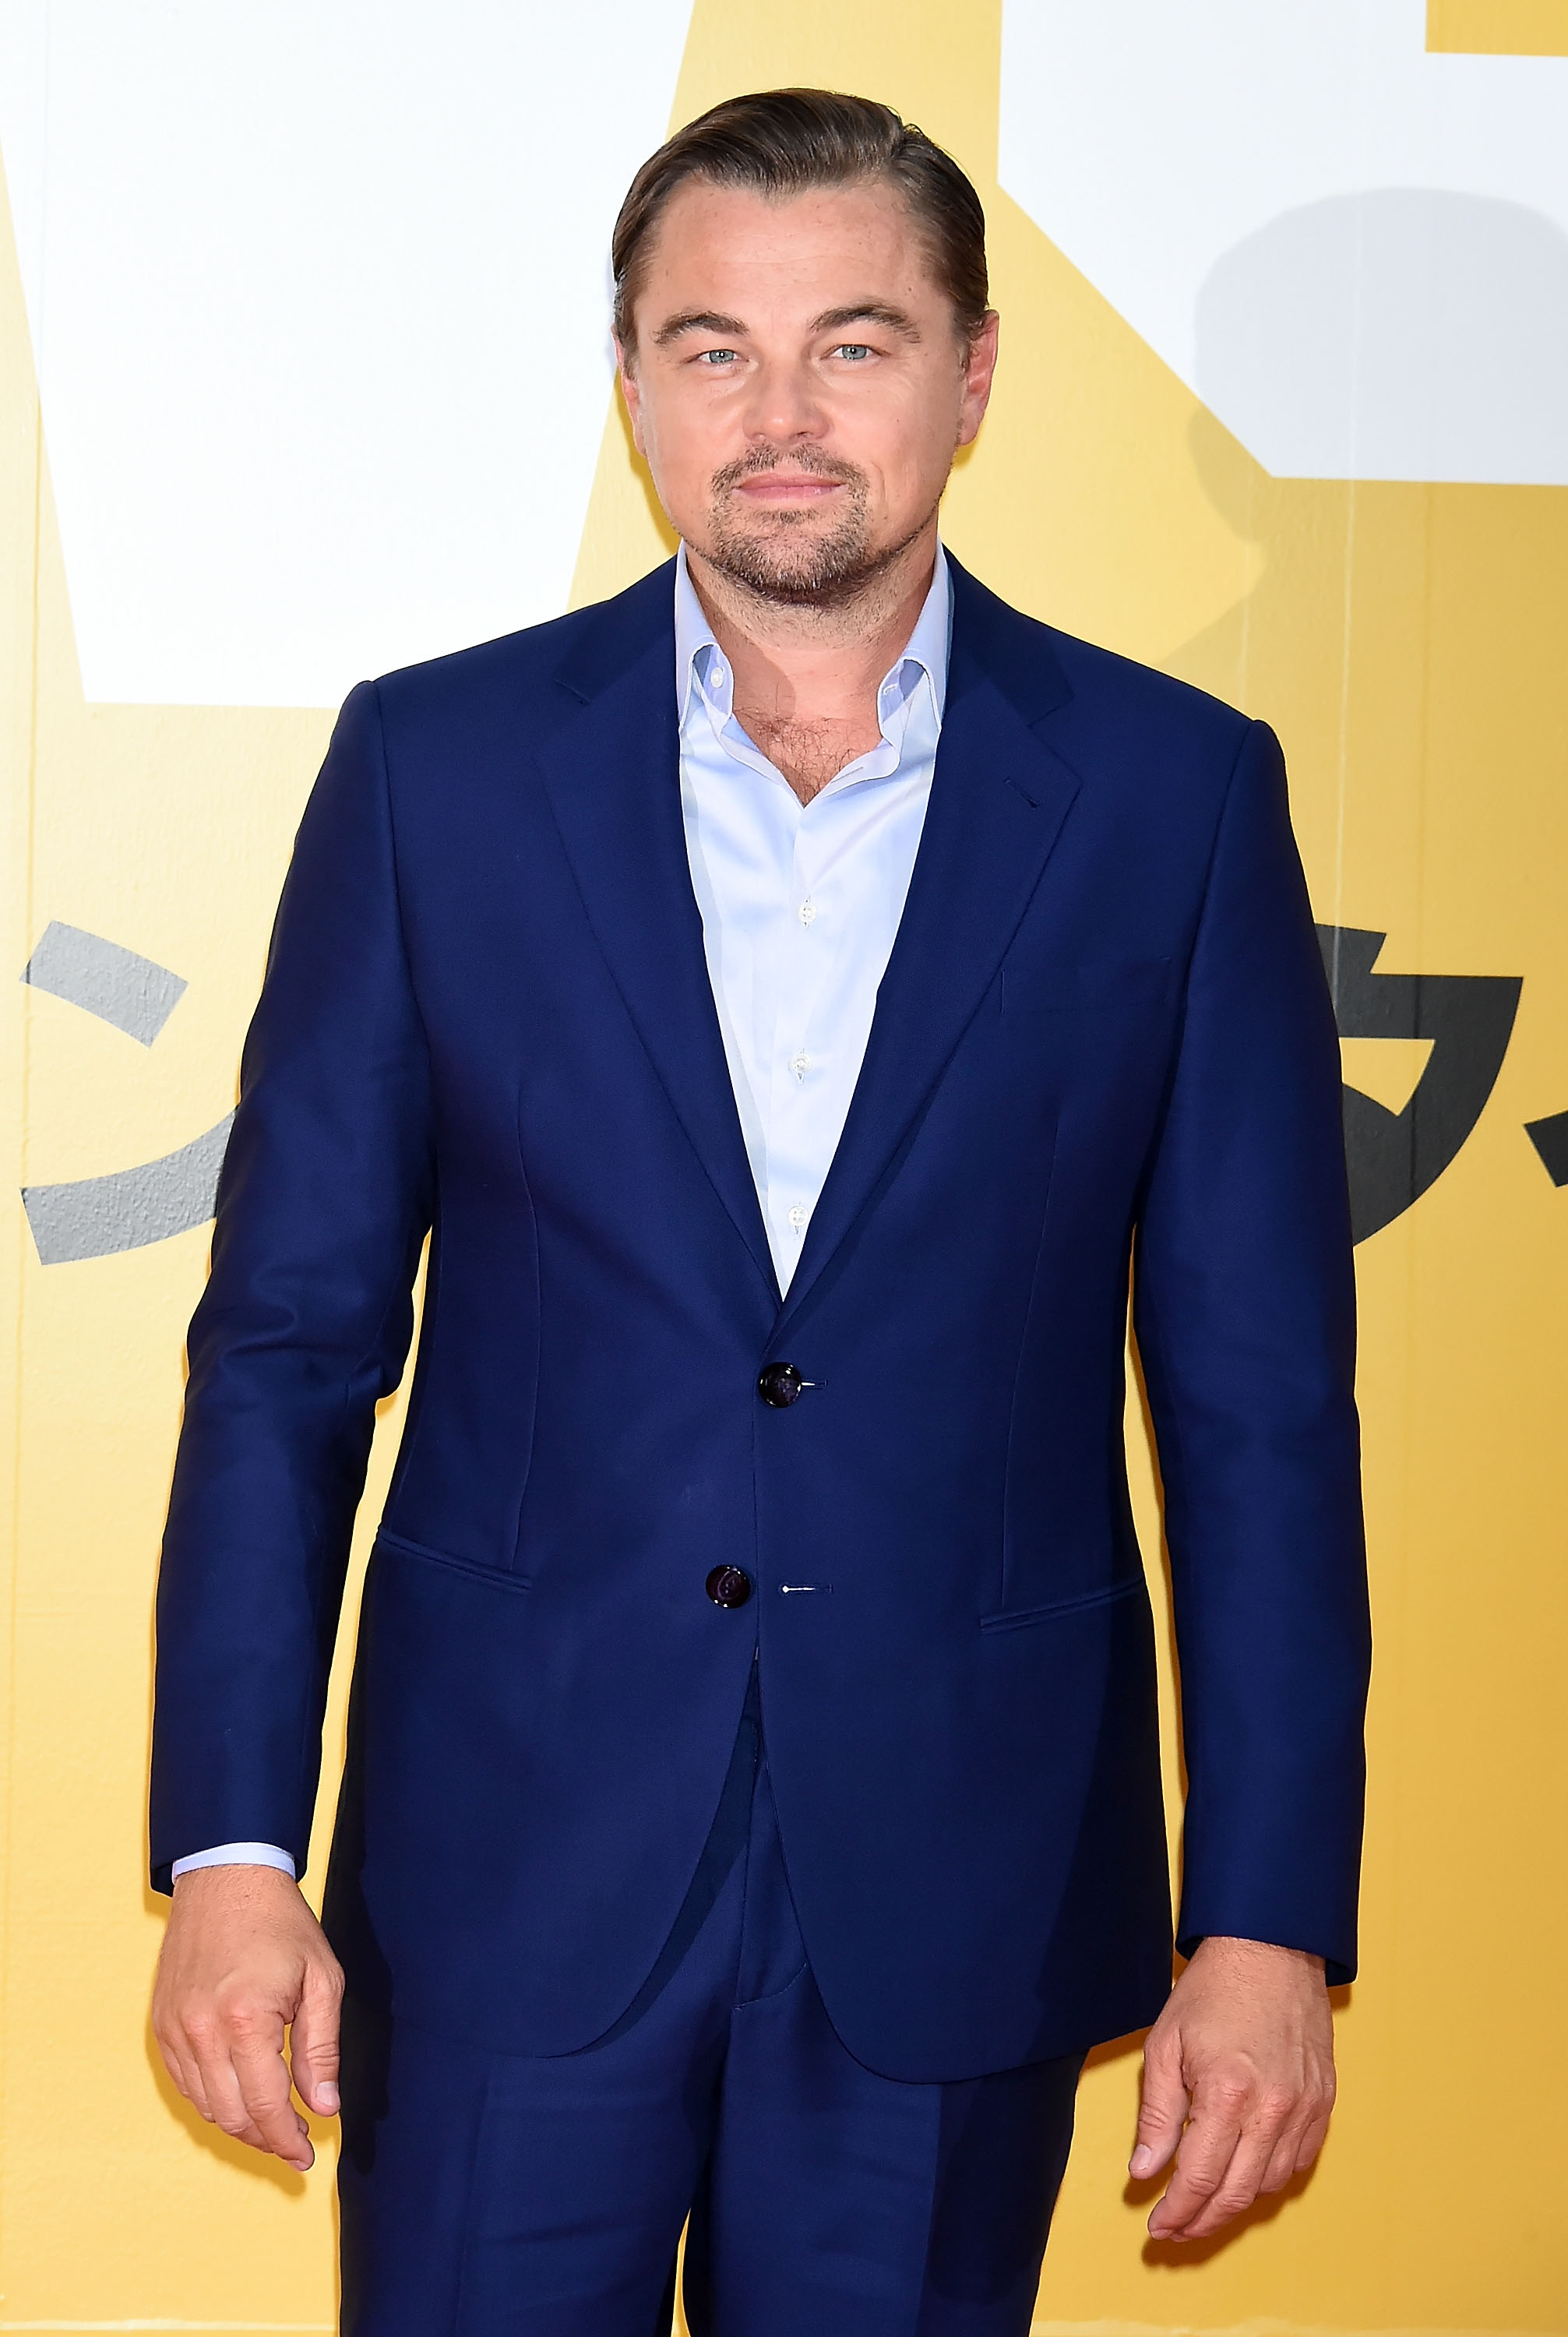 Leonardo DiCaprio at an event for Once Upon a Time... in Hollywood (2019)